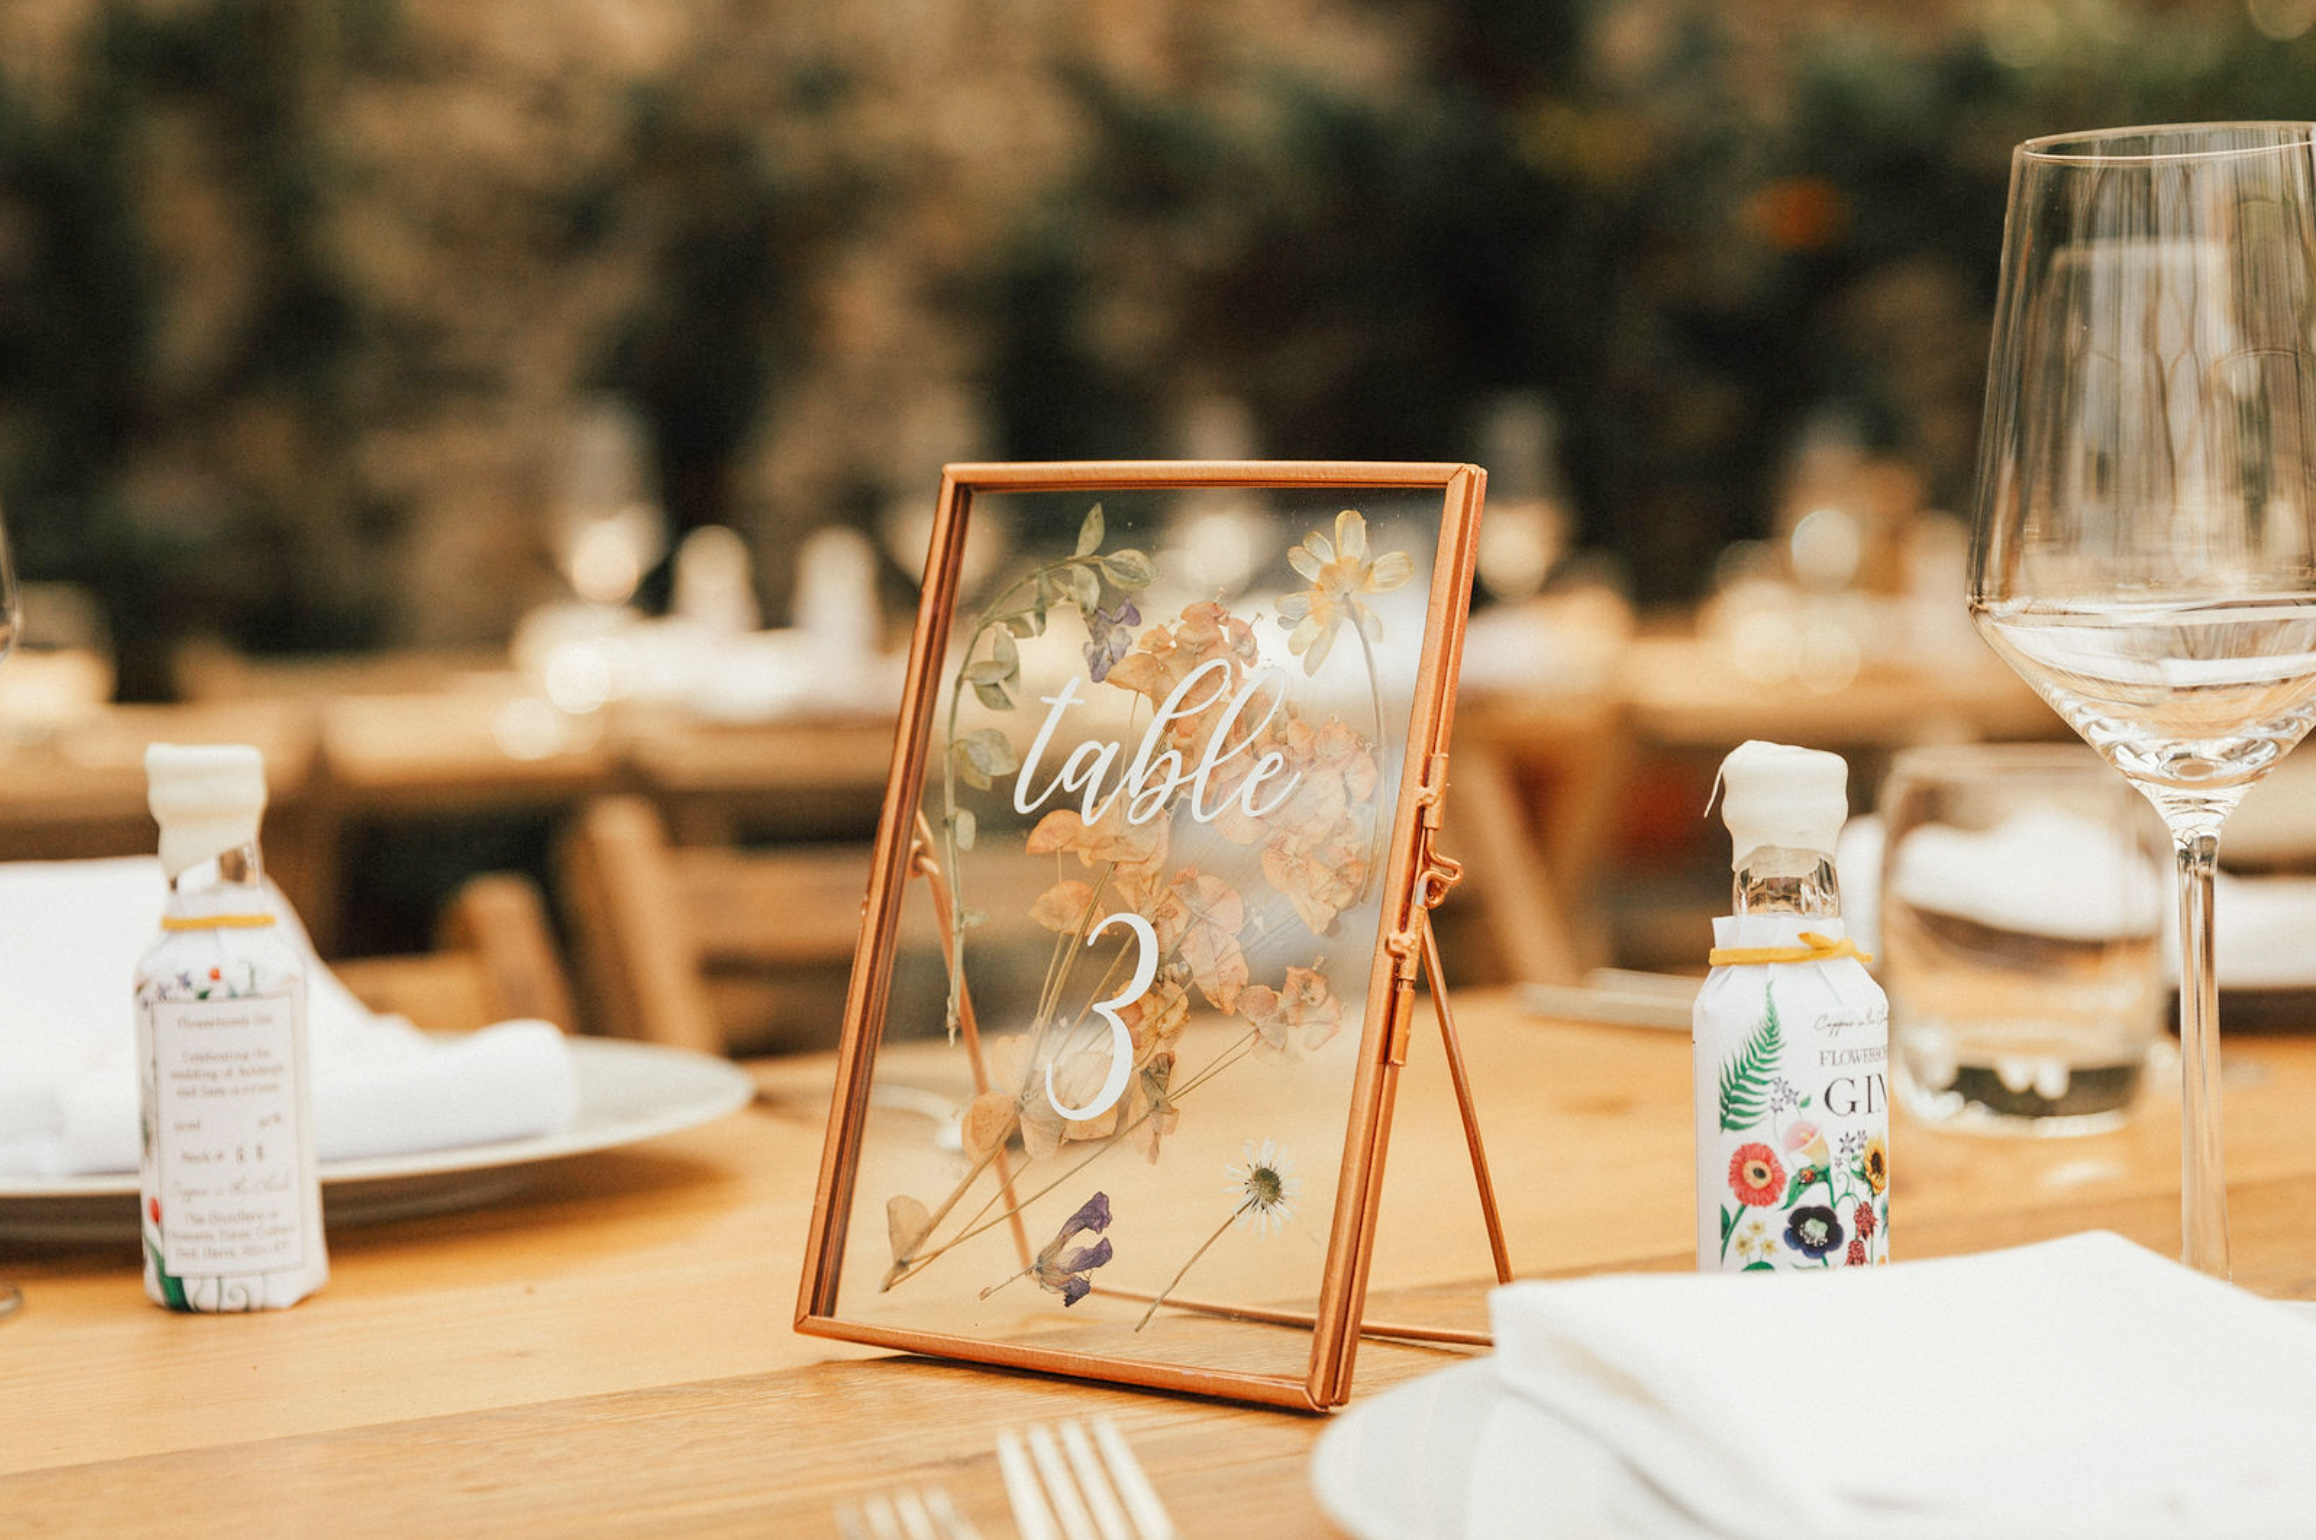 Personalised Gin favour on wedding table setting